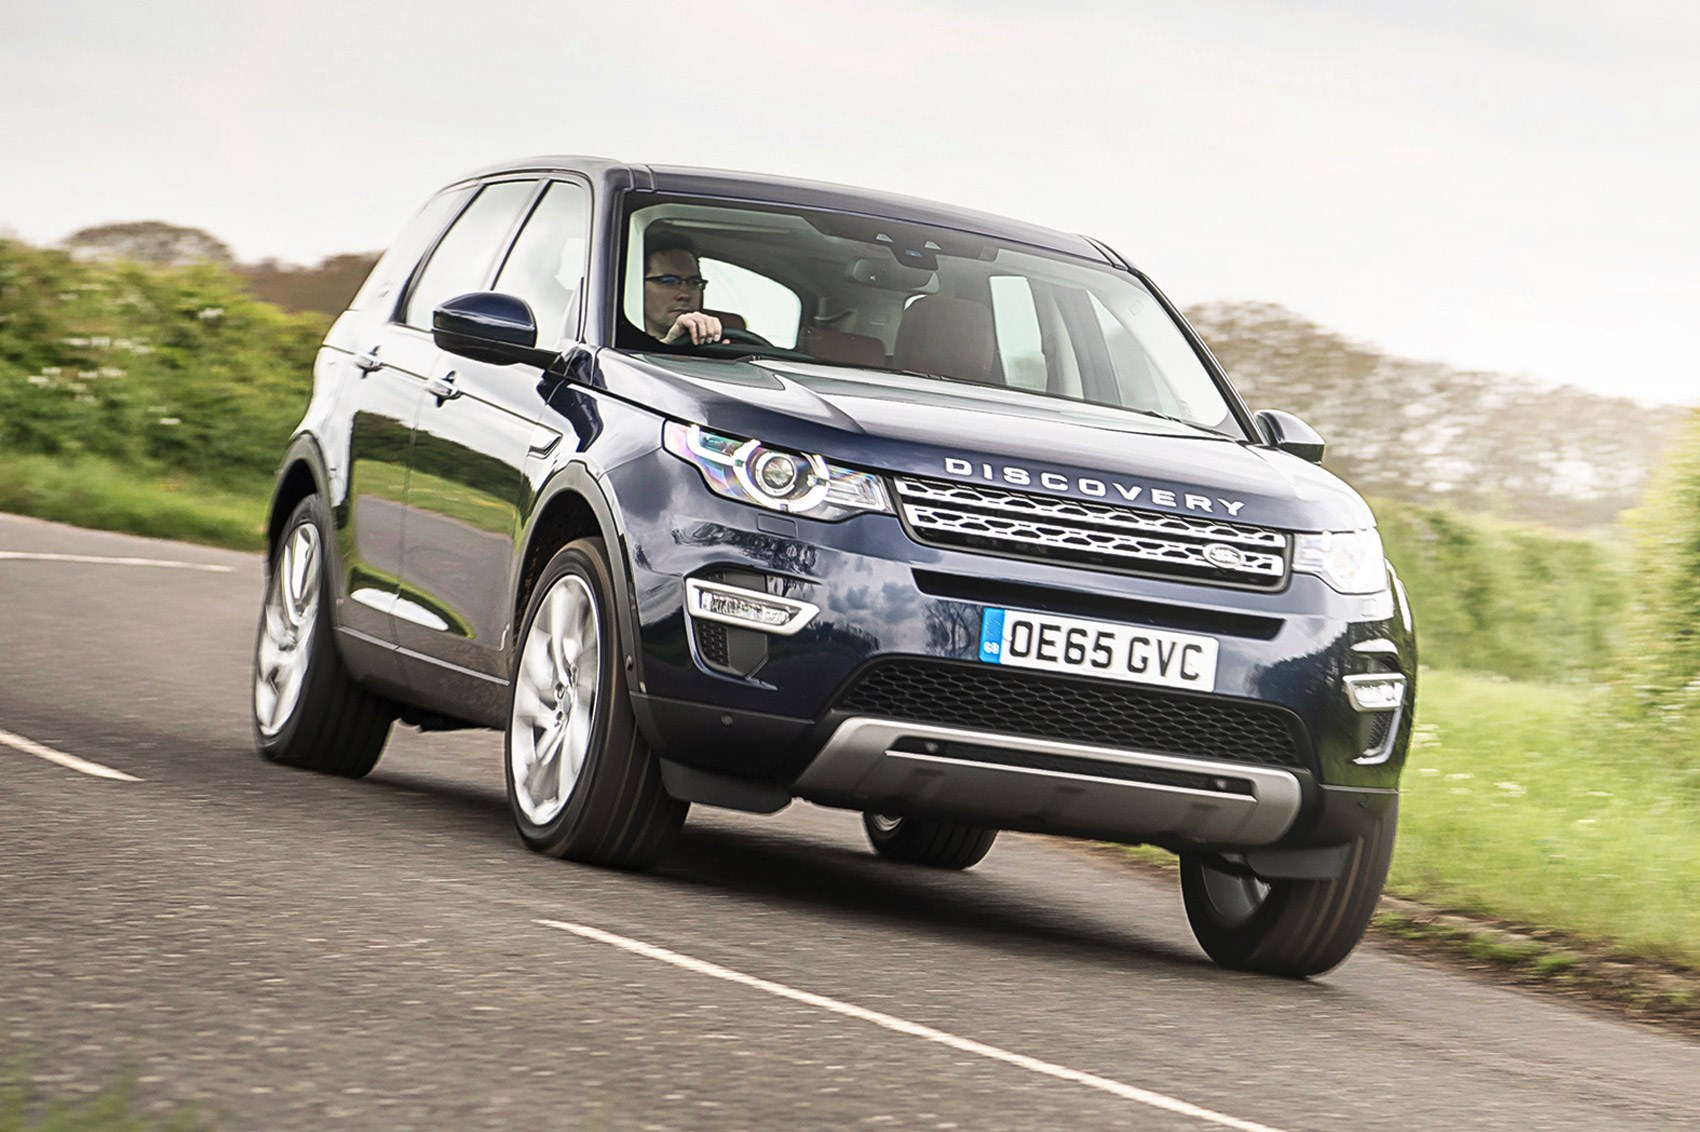 rover hse land sport landrover lux price news discovery dynamic h preview